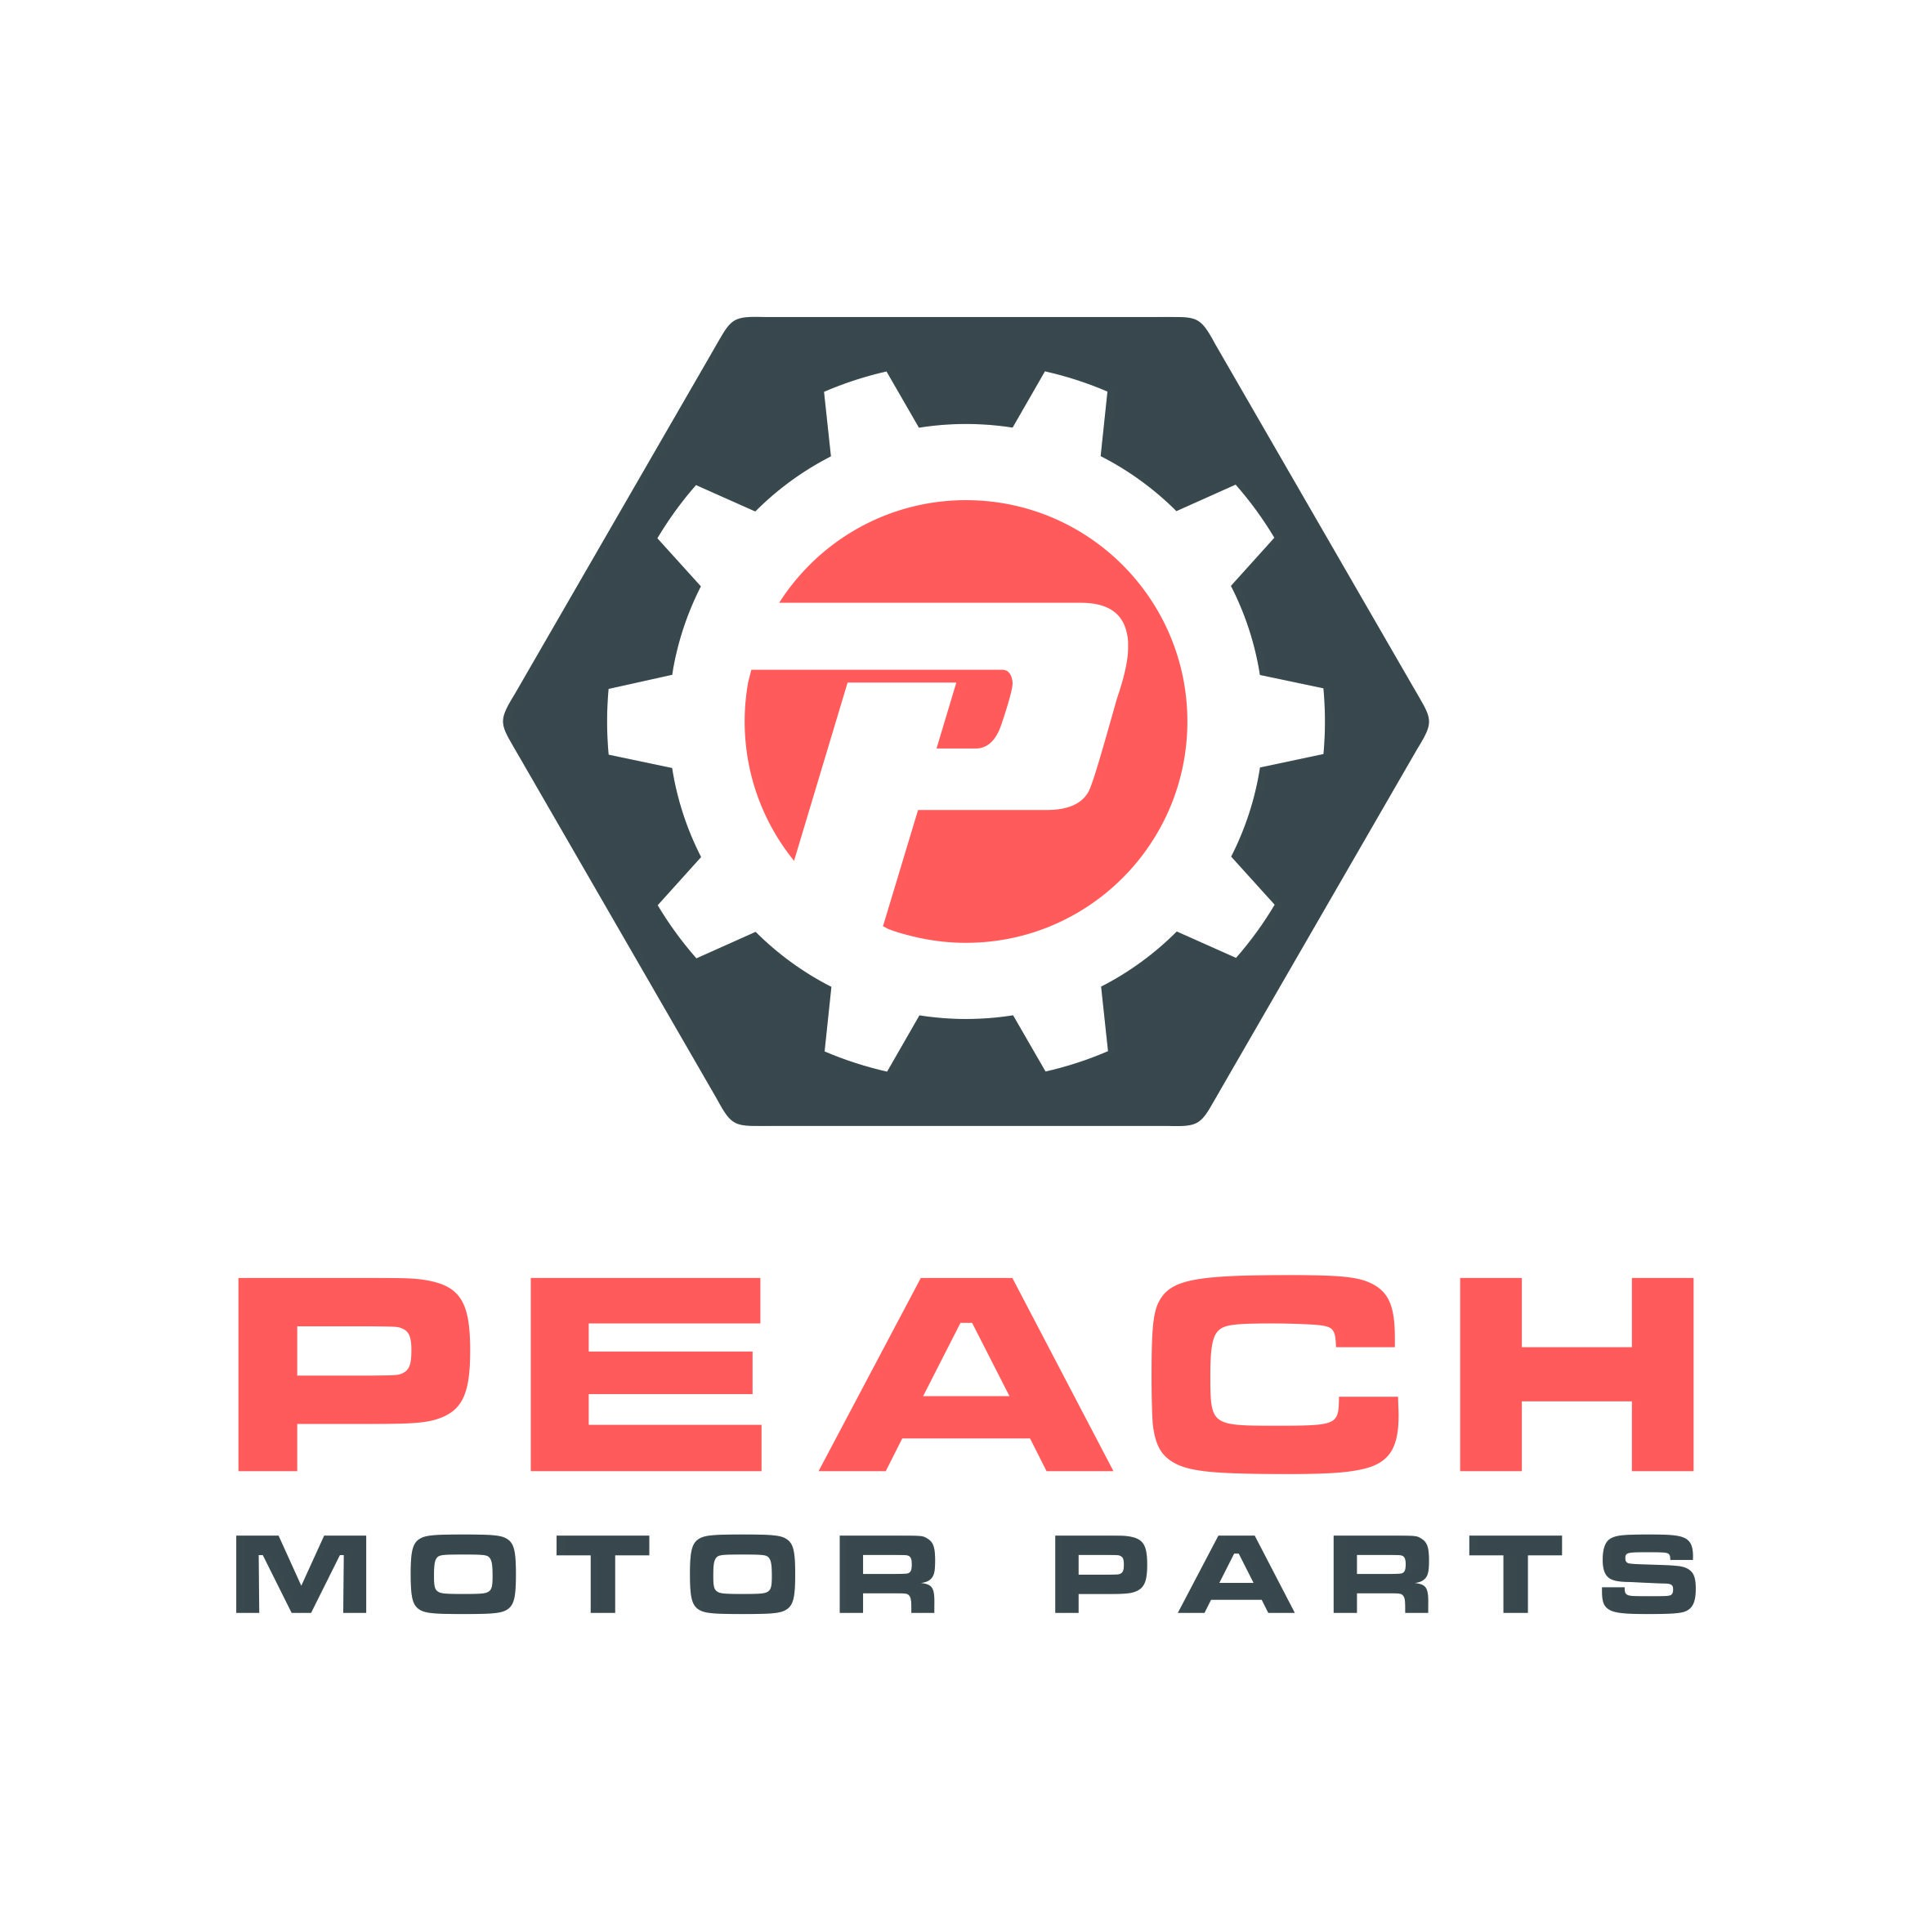 Peach Motor Parts needs a new exciting and professional looking logo!